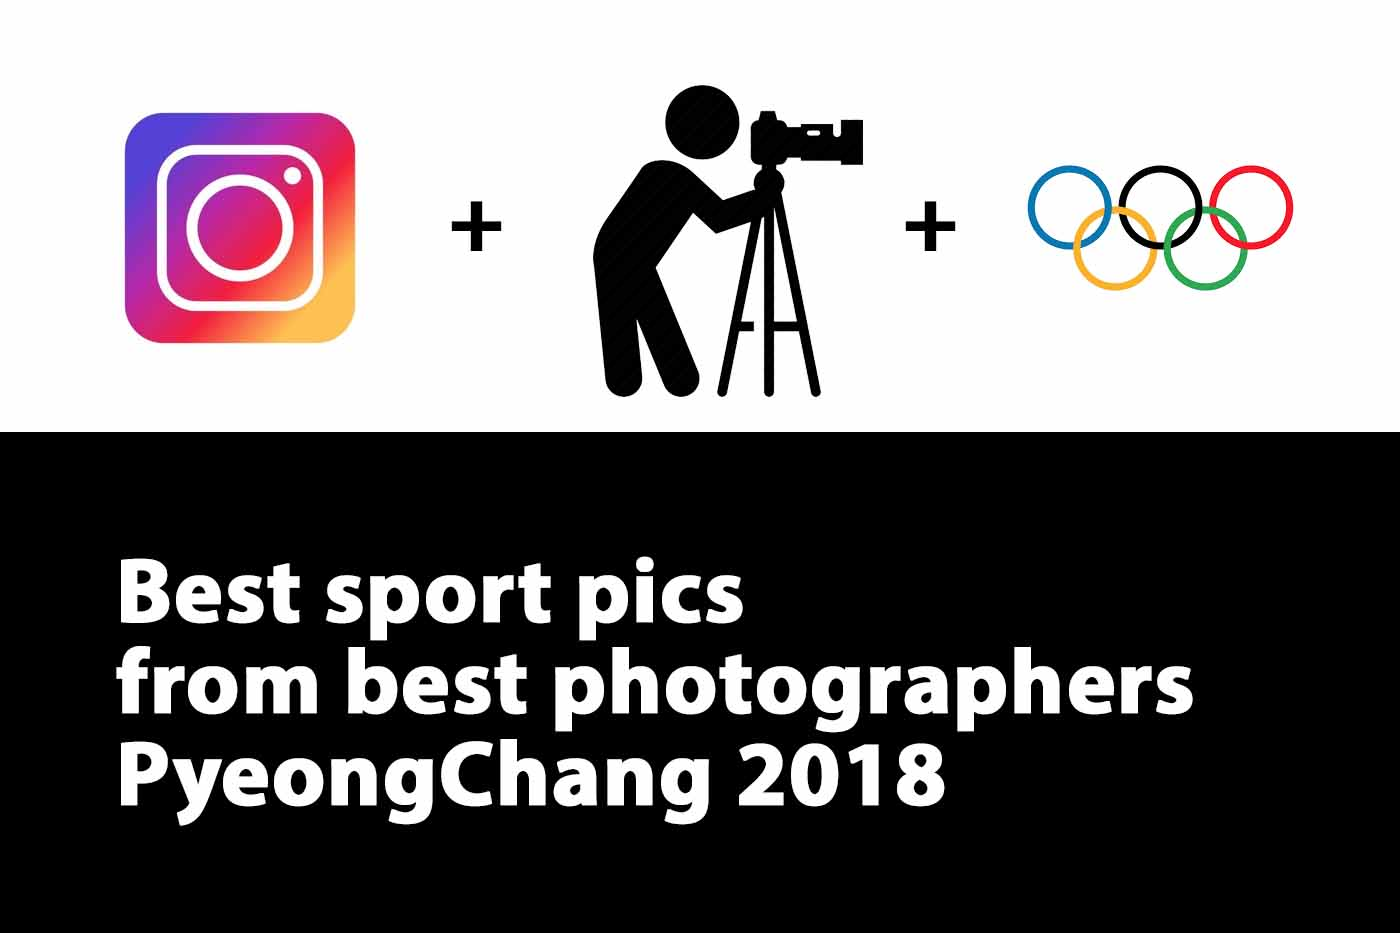 best, sport, pic, photo, olympic games, olympiada, 2018, PyeongChang, sport photographer,